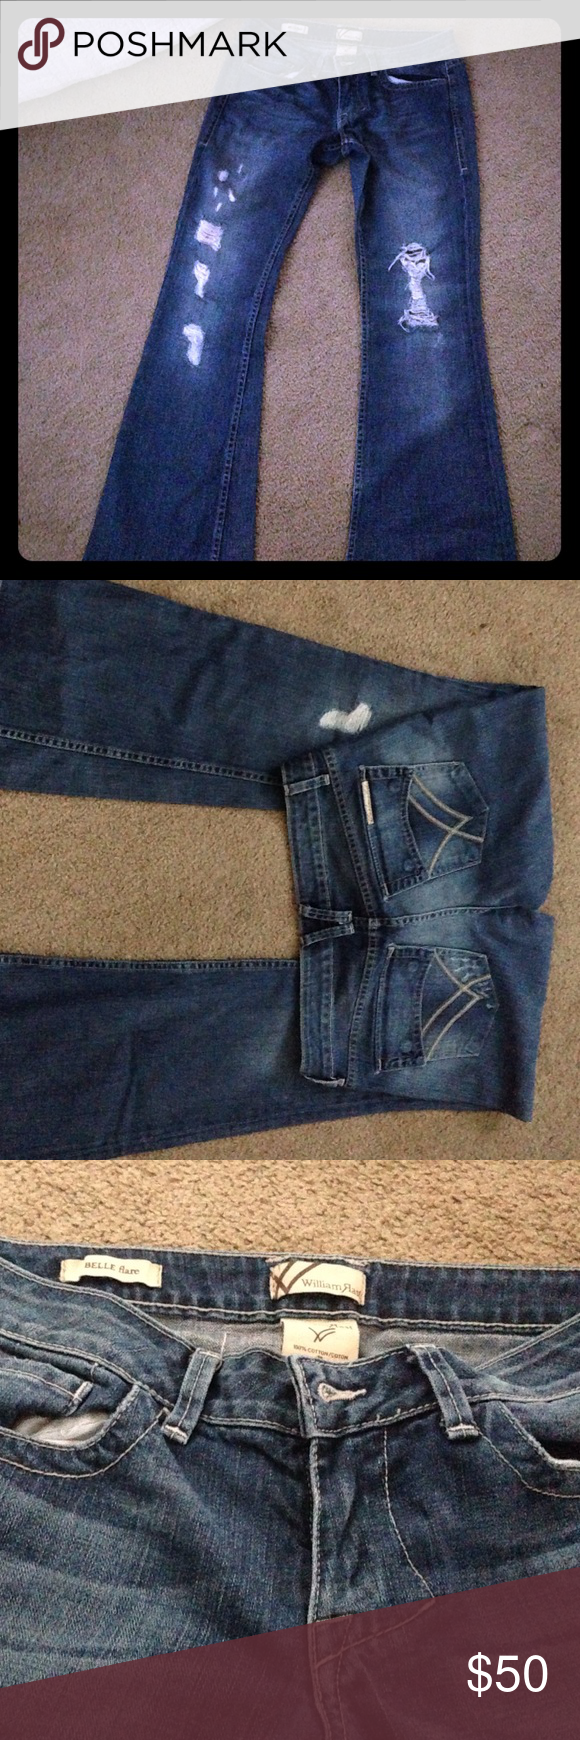 William rast  BELLE flare jeans 100% cotton, strong denim. No stretch. Like brand new, never worn out of the house. William Rast Jeans Flare & Wide Leg